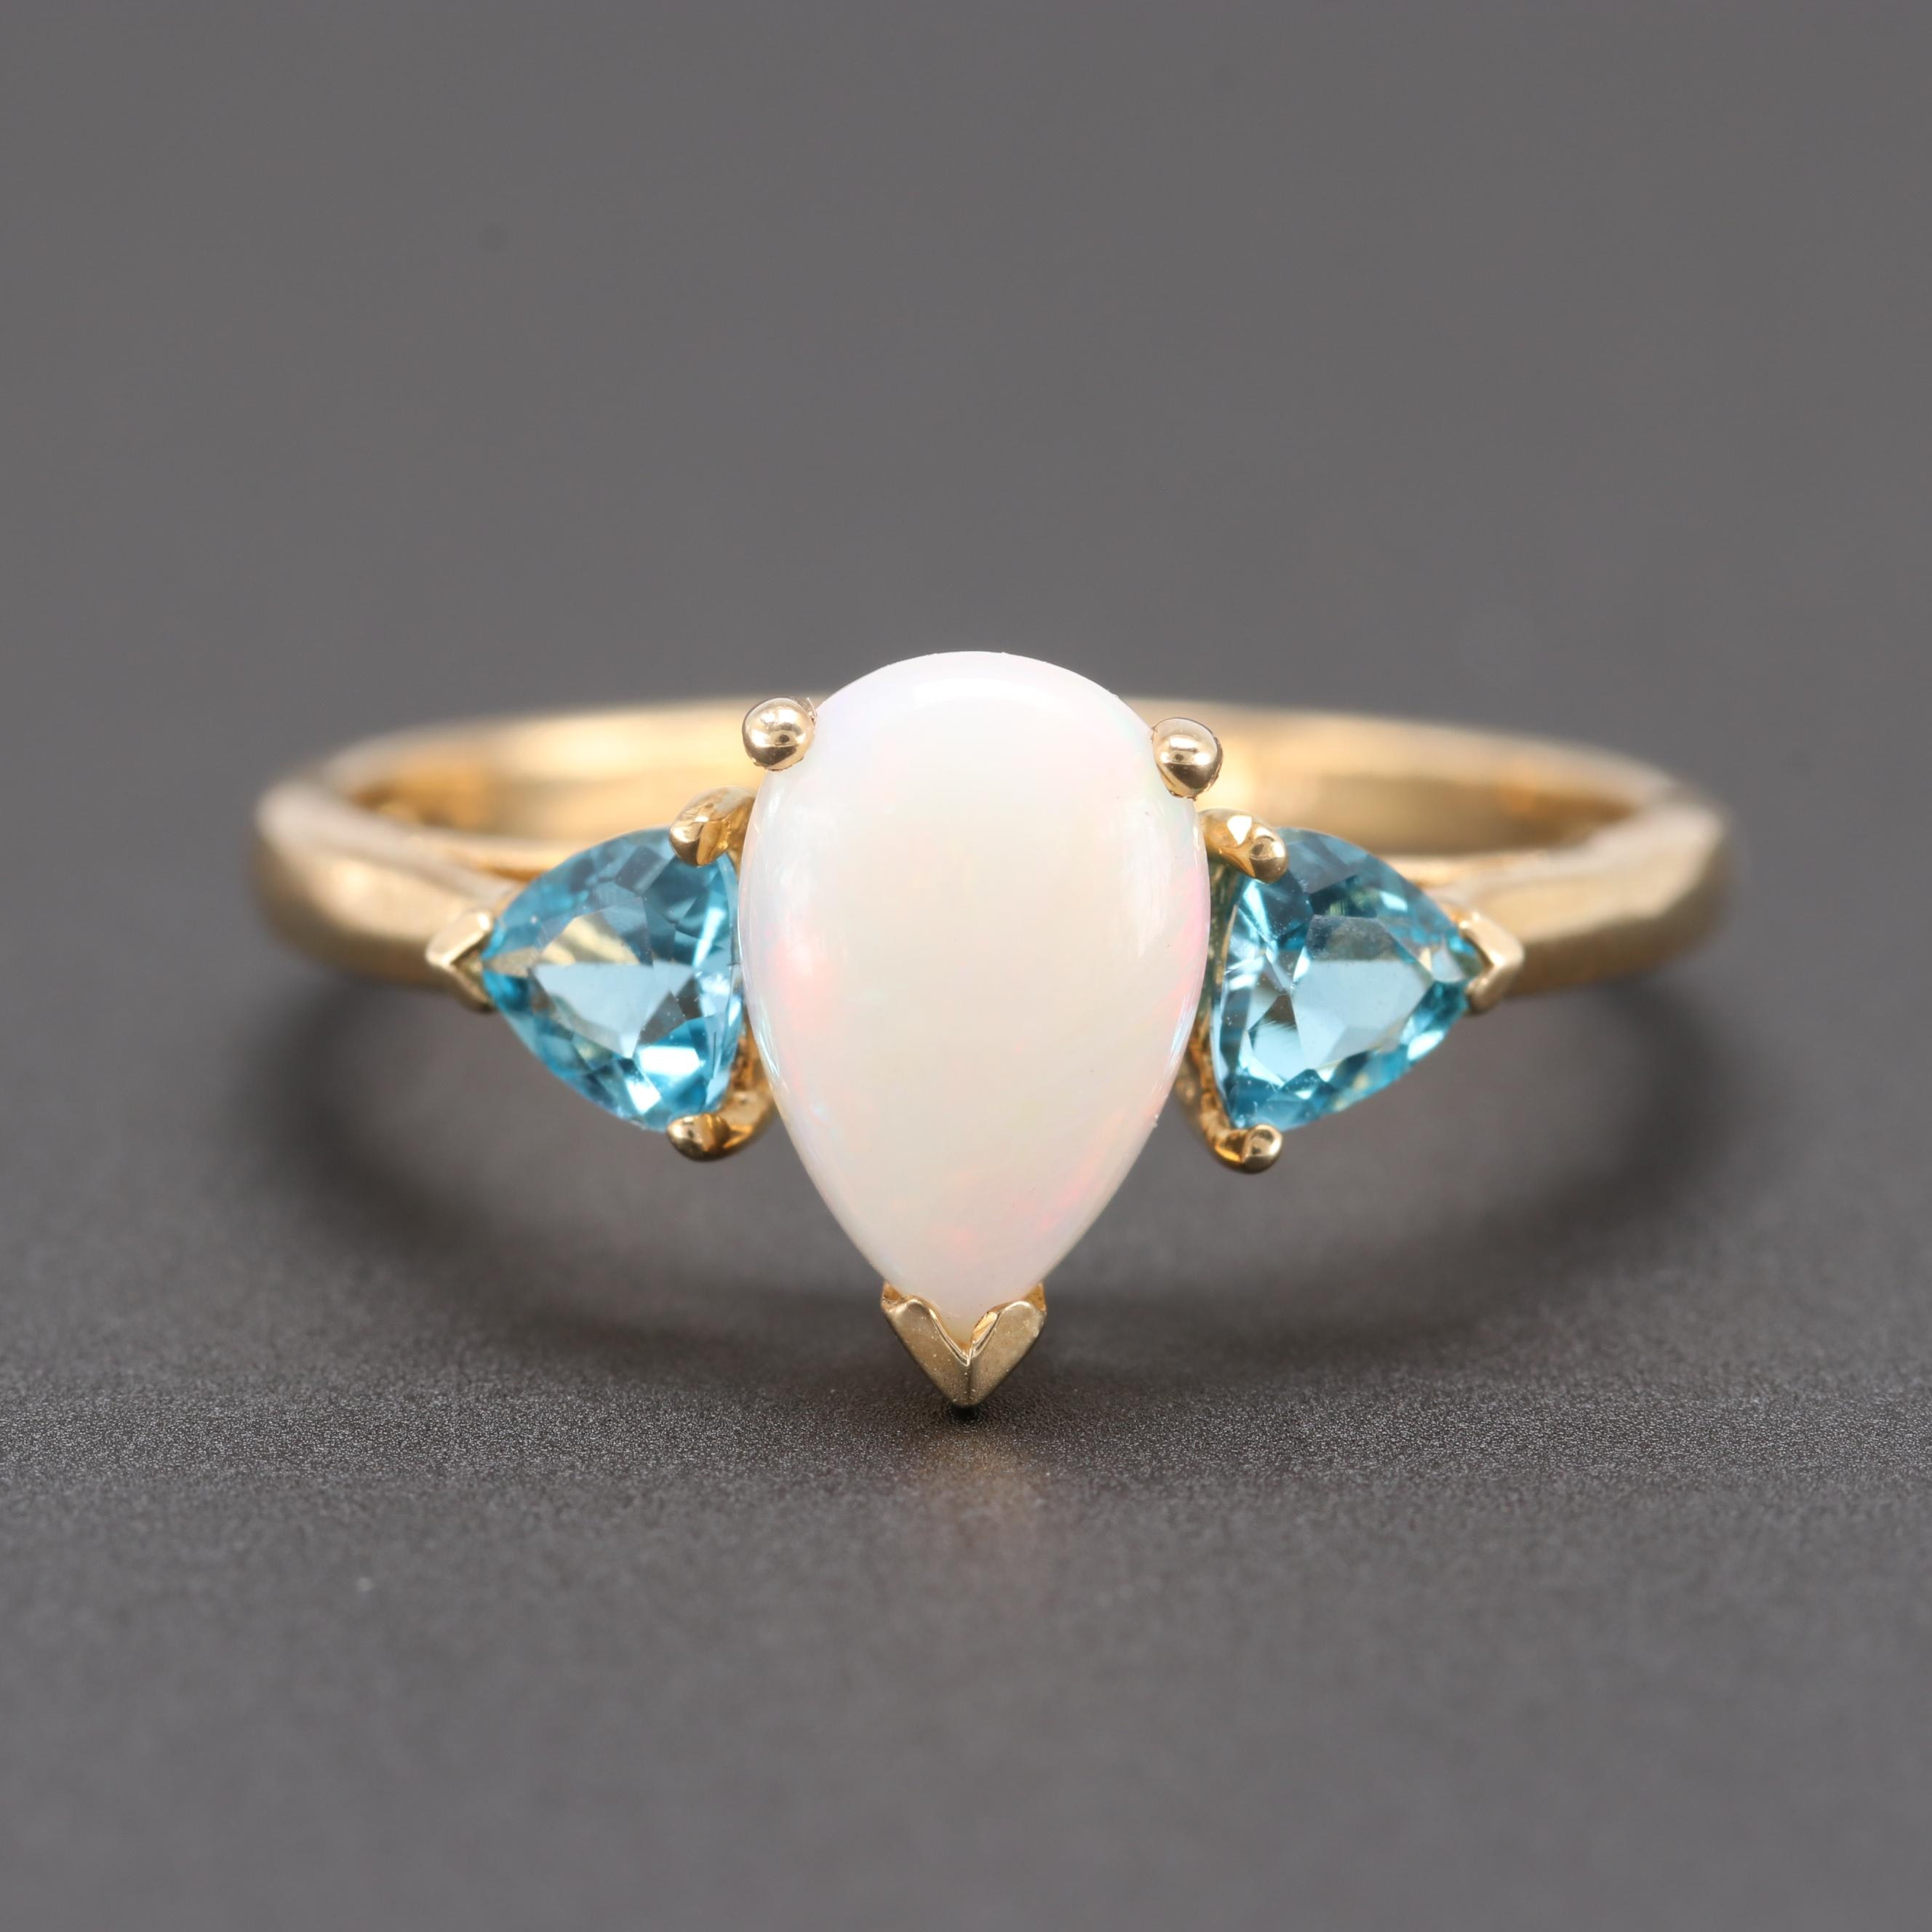 10K Yellow Gold Opal and Blue Topaz Ring